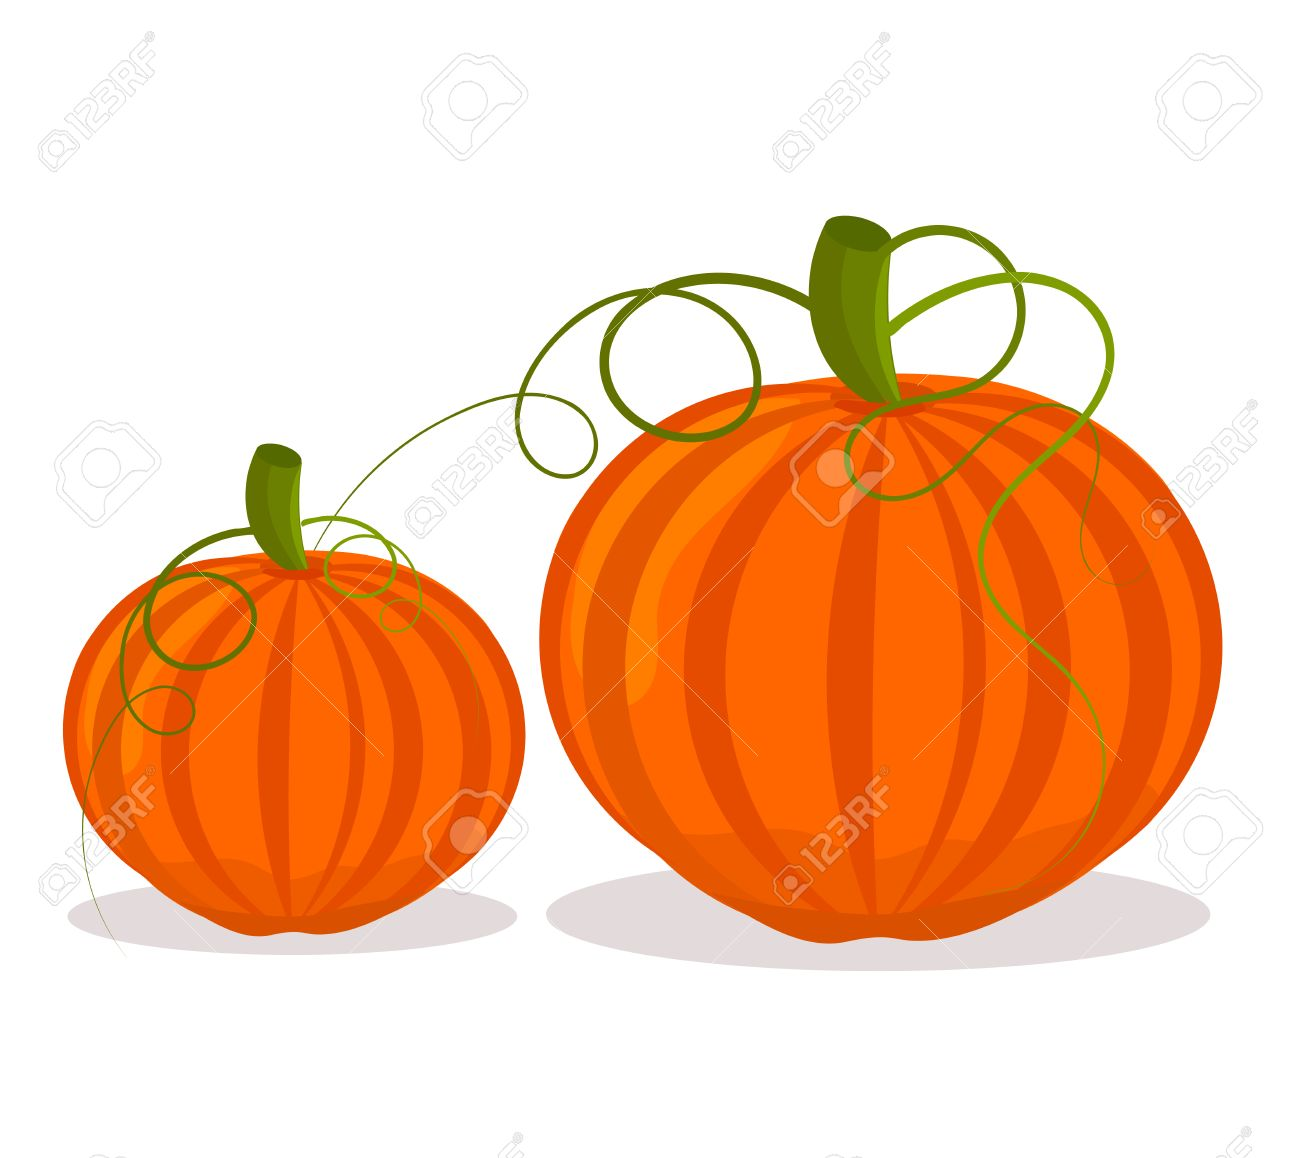 two pumpkins big and small over white royalty free cliparts rh 123rf com small pumpkin clipart free small pumpkin clipart free